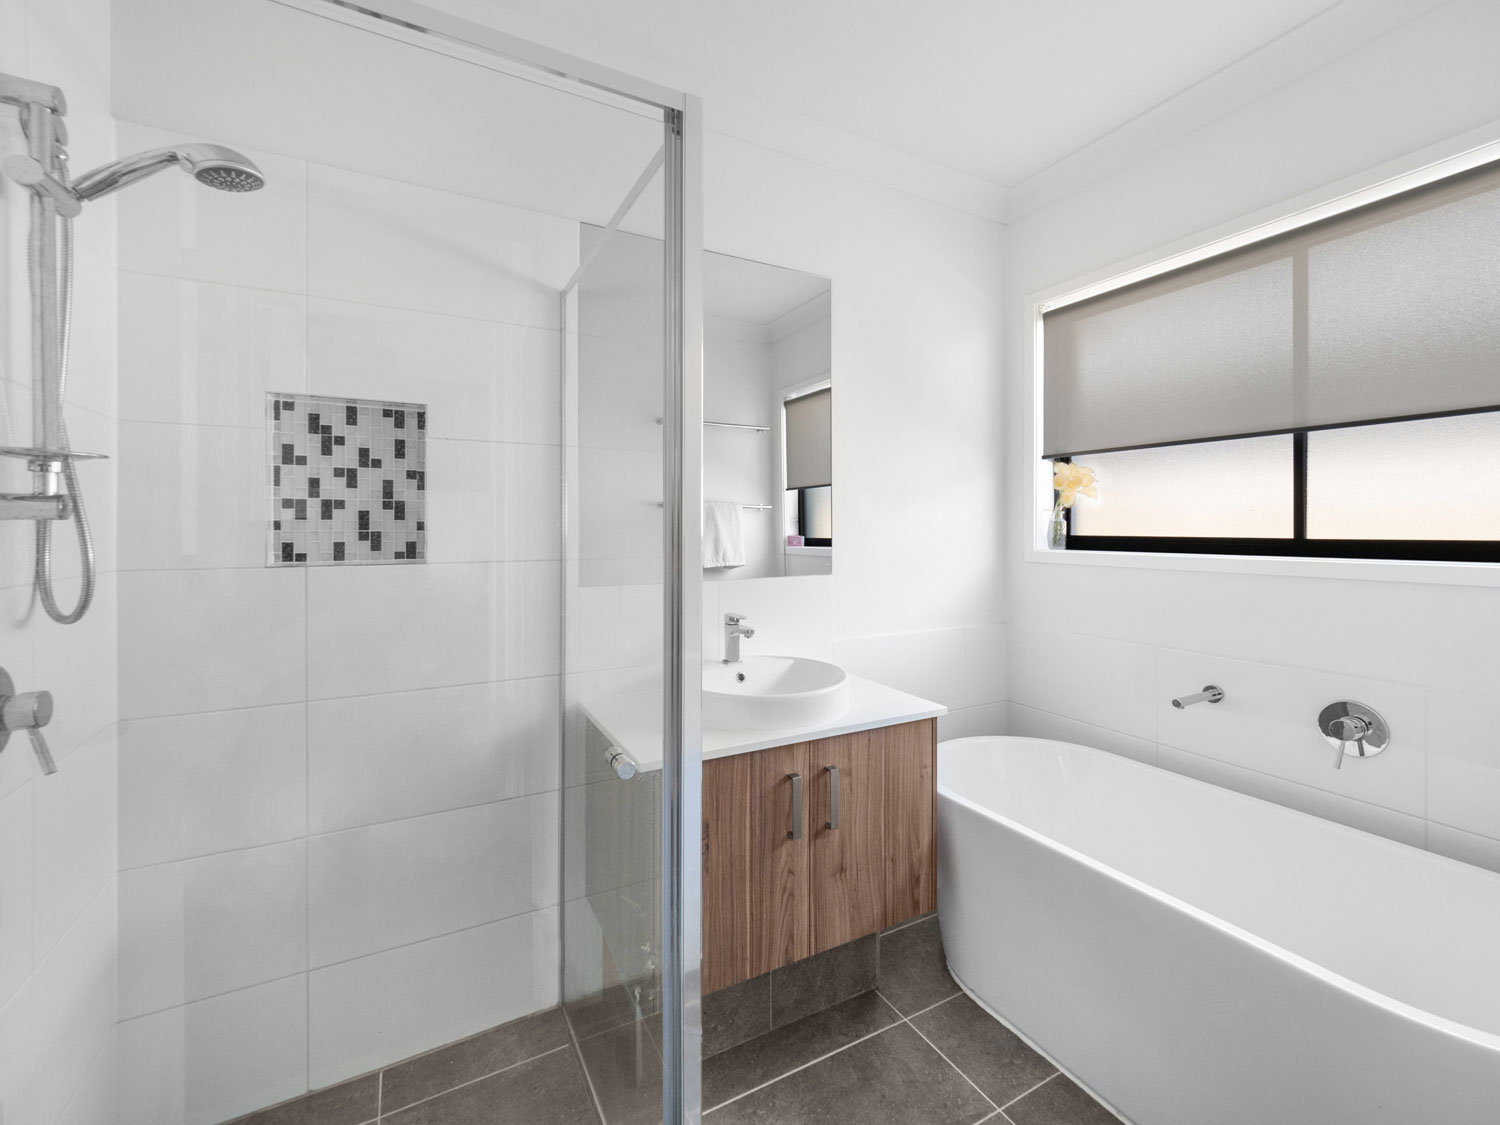 The main bathroom - Real estate photography at Waterford